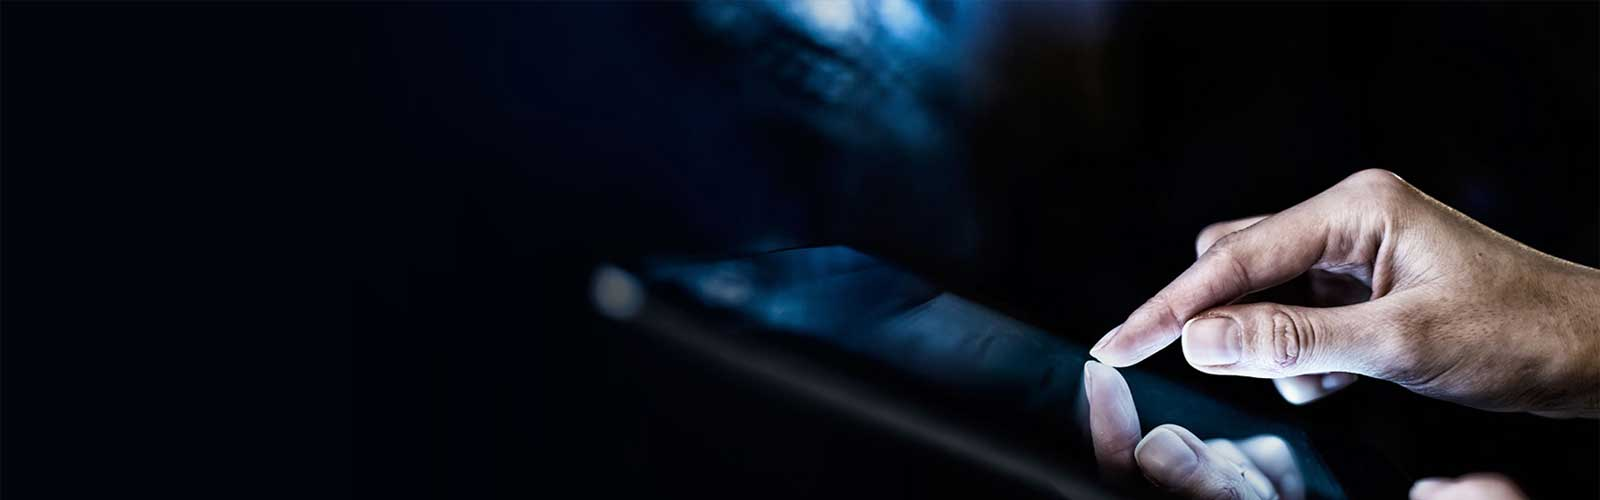 mobility-banner